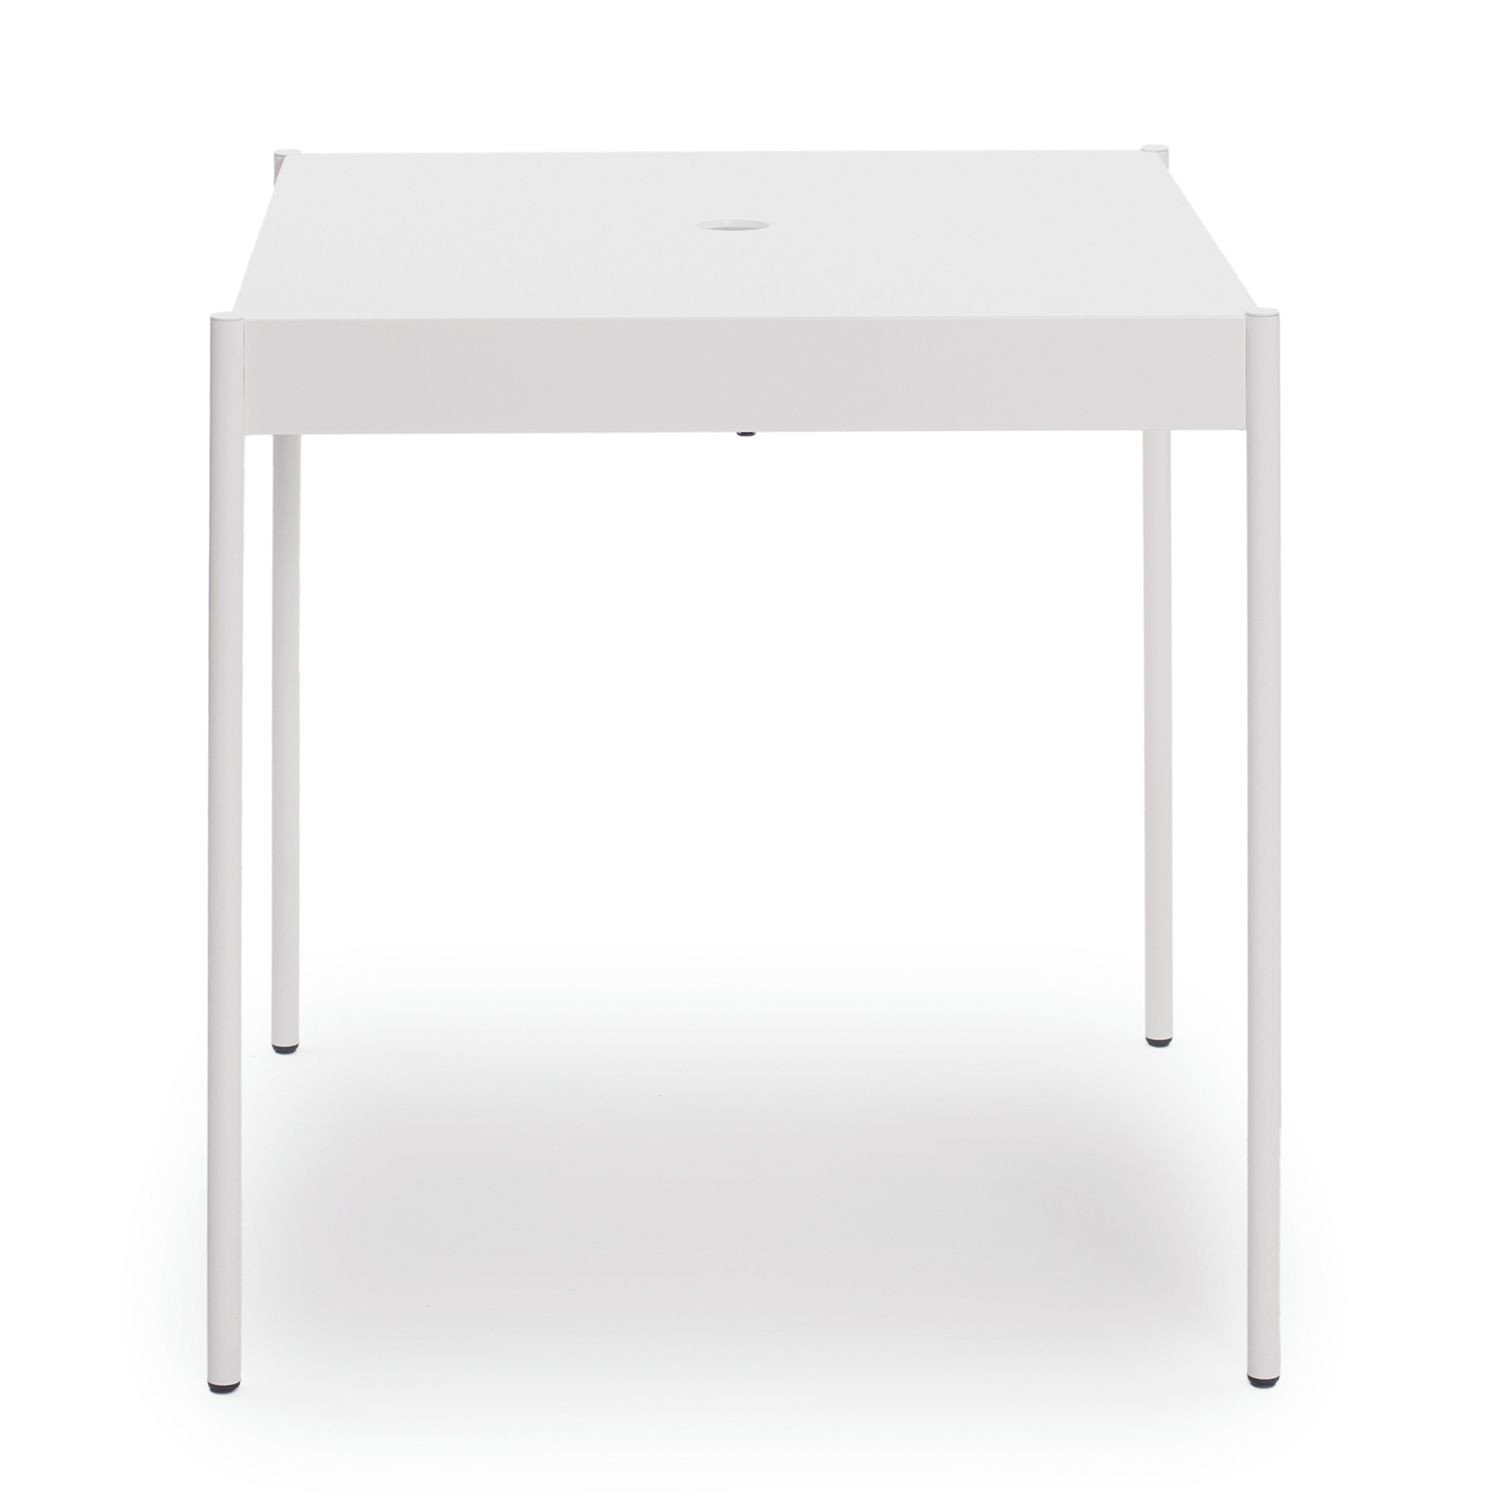 La Table Stackable Table T/670x670 | White RAL 9016